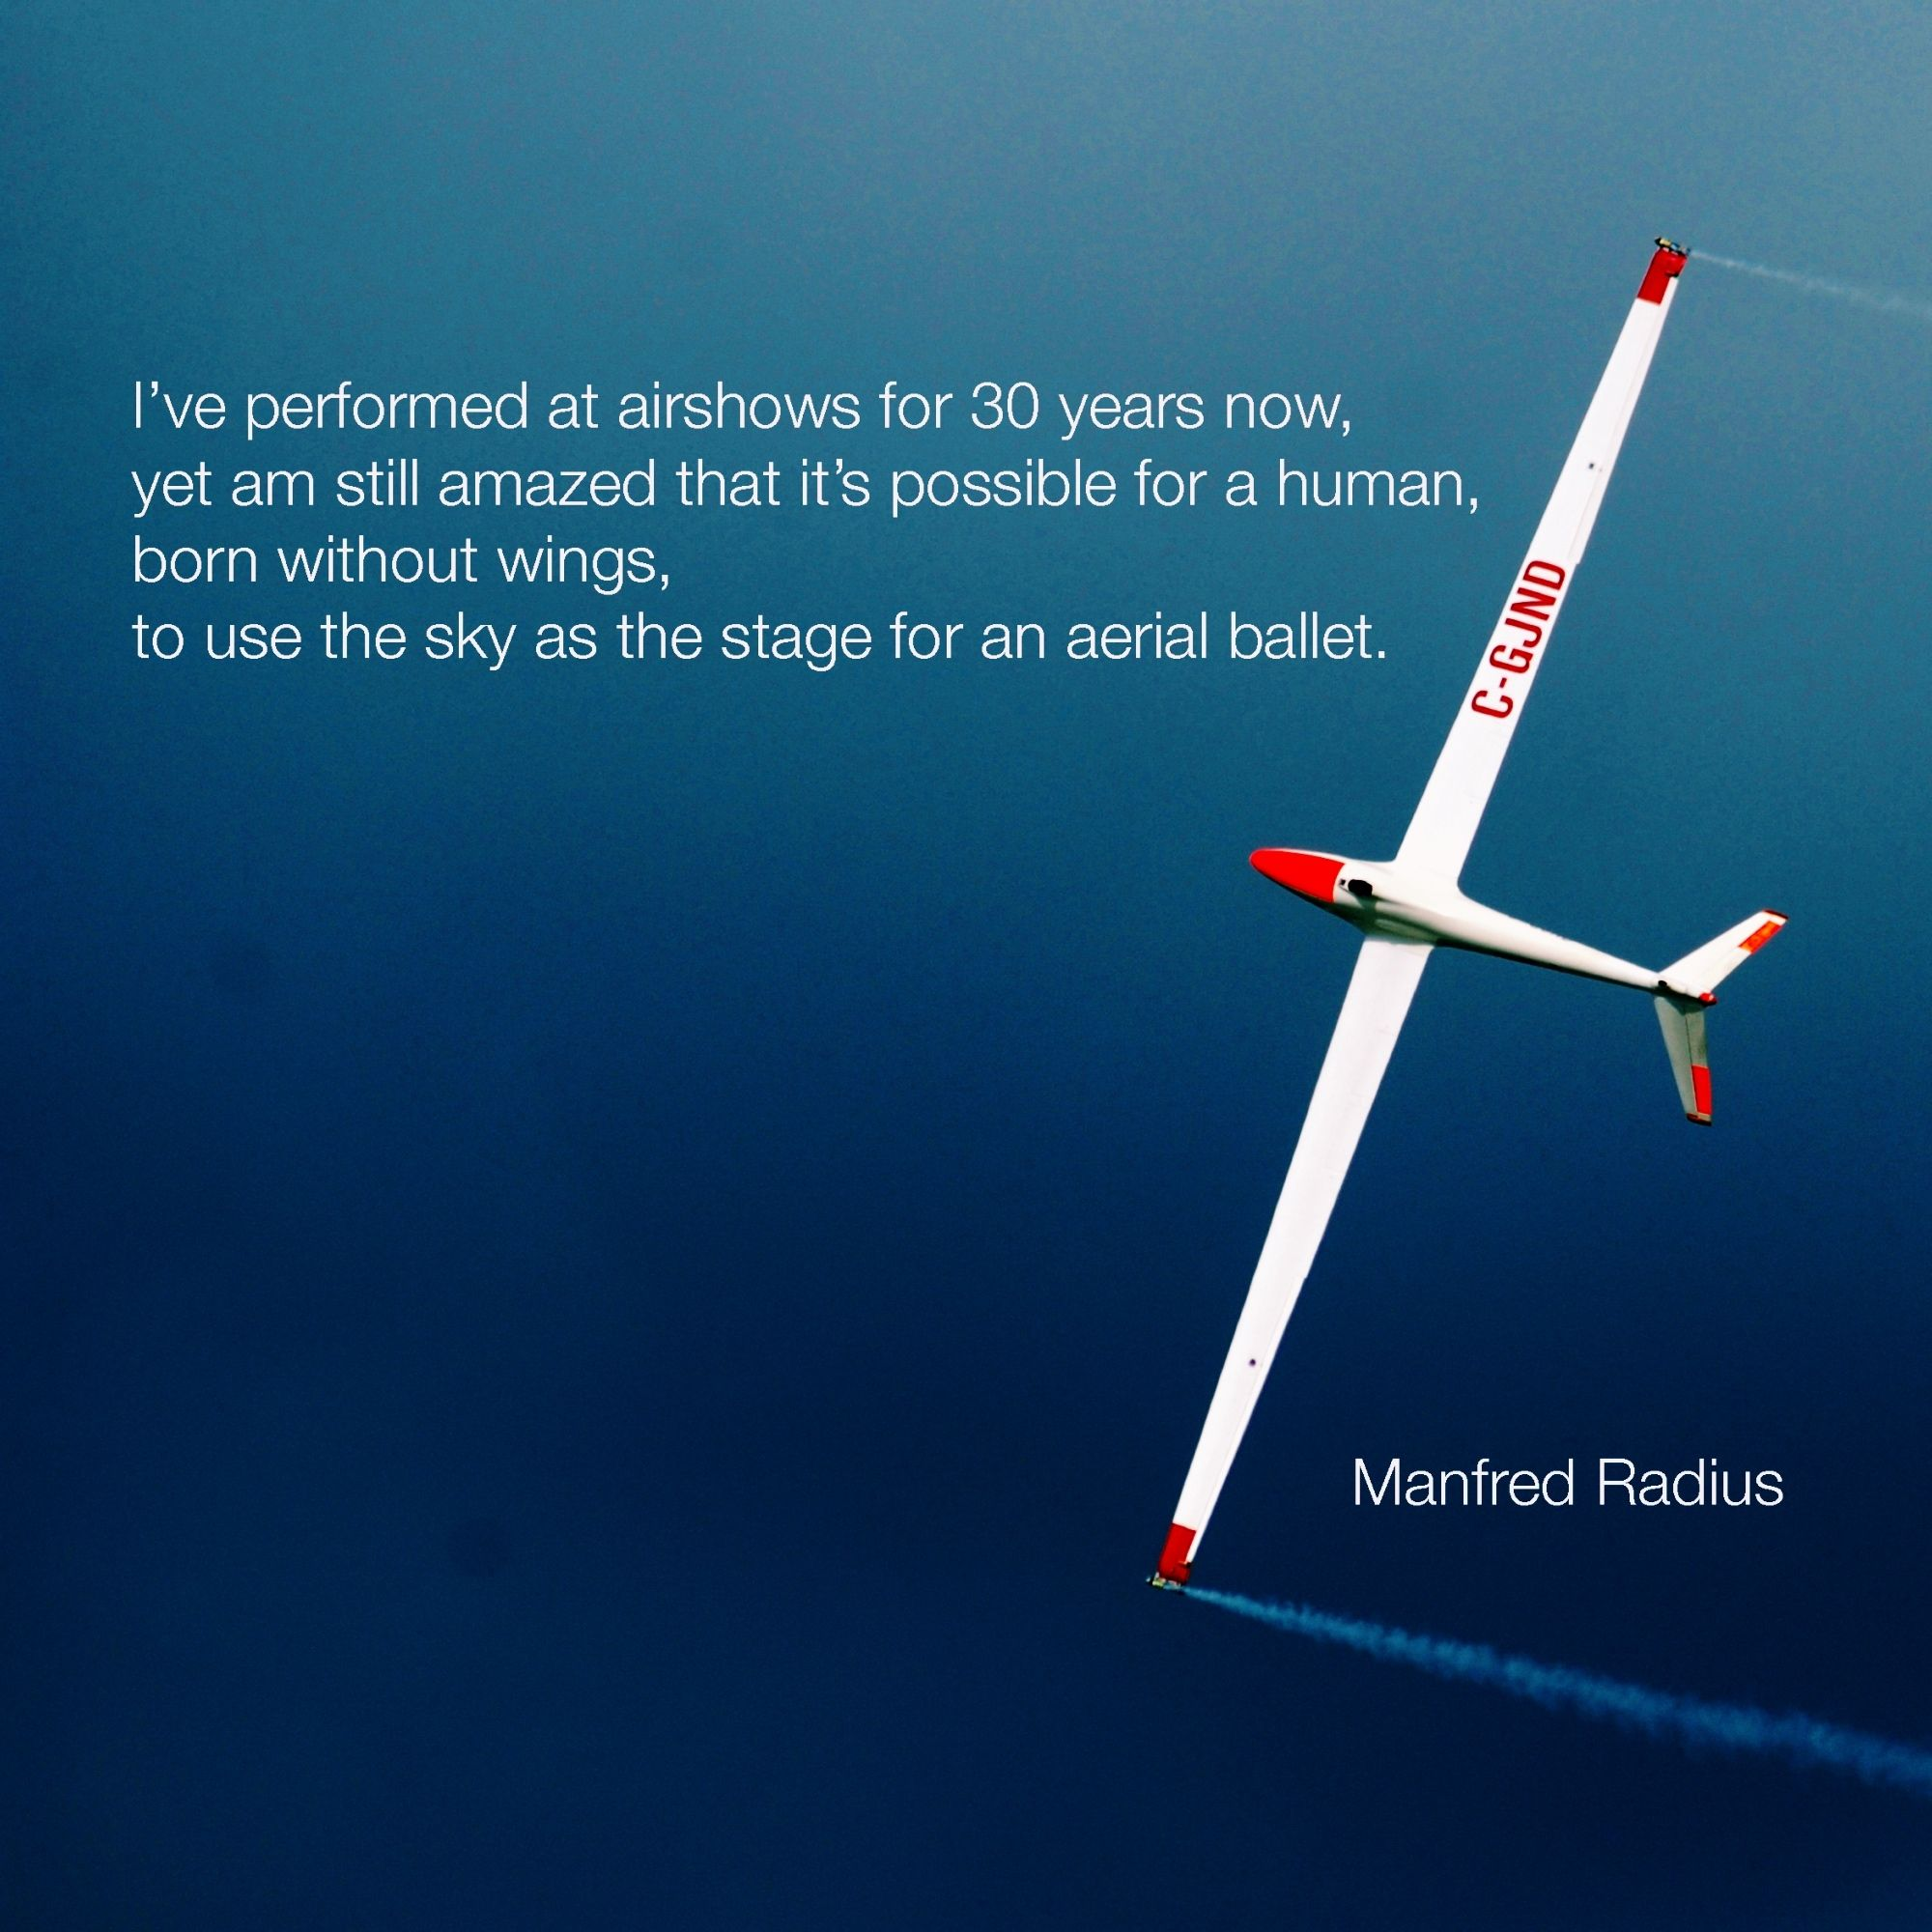 I've watched Manfred Radius do aerobatics in his Salto sailplane, and it's beautiful in a way different from the fast jets or high-roll-rate biplanes. Doesn't surprise me that Manfred maintains his wonder of flight.  Lose the wonder, the excitement, the enjoyment … and your performance will soon also start to sadly decline.  (Original photo credit U.S. Navy, snapped by Edward I. Fagg during the 50th Anniversary Naval Air Station Oceana Air Show)